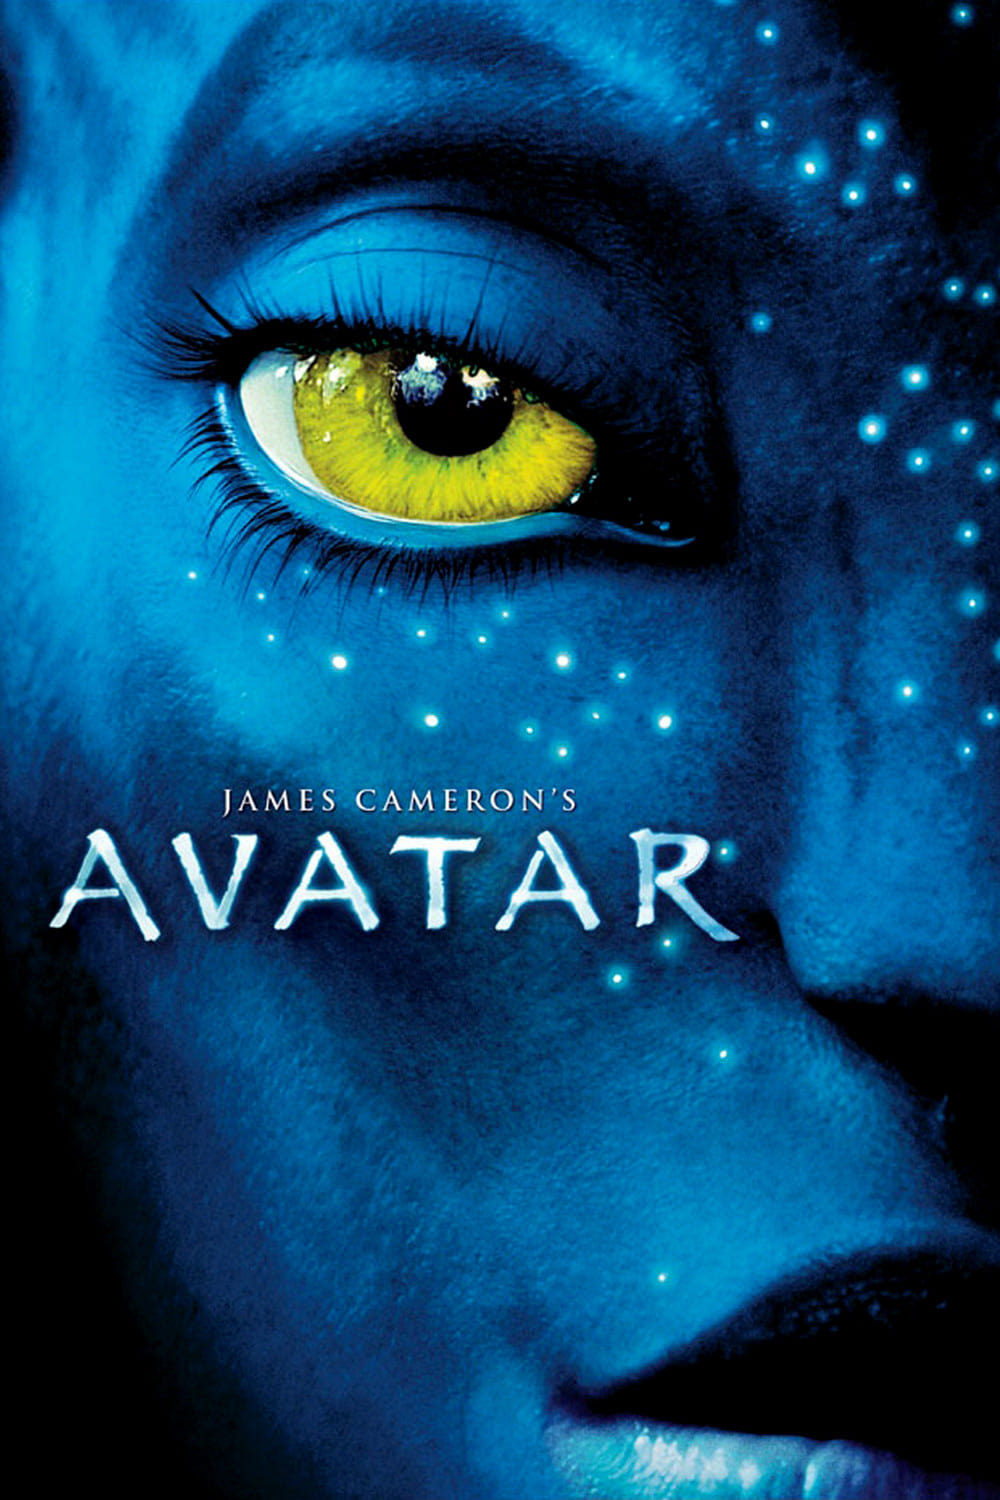 #1 - Avatar By James Cameron